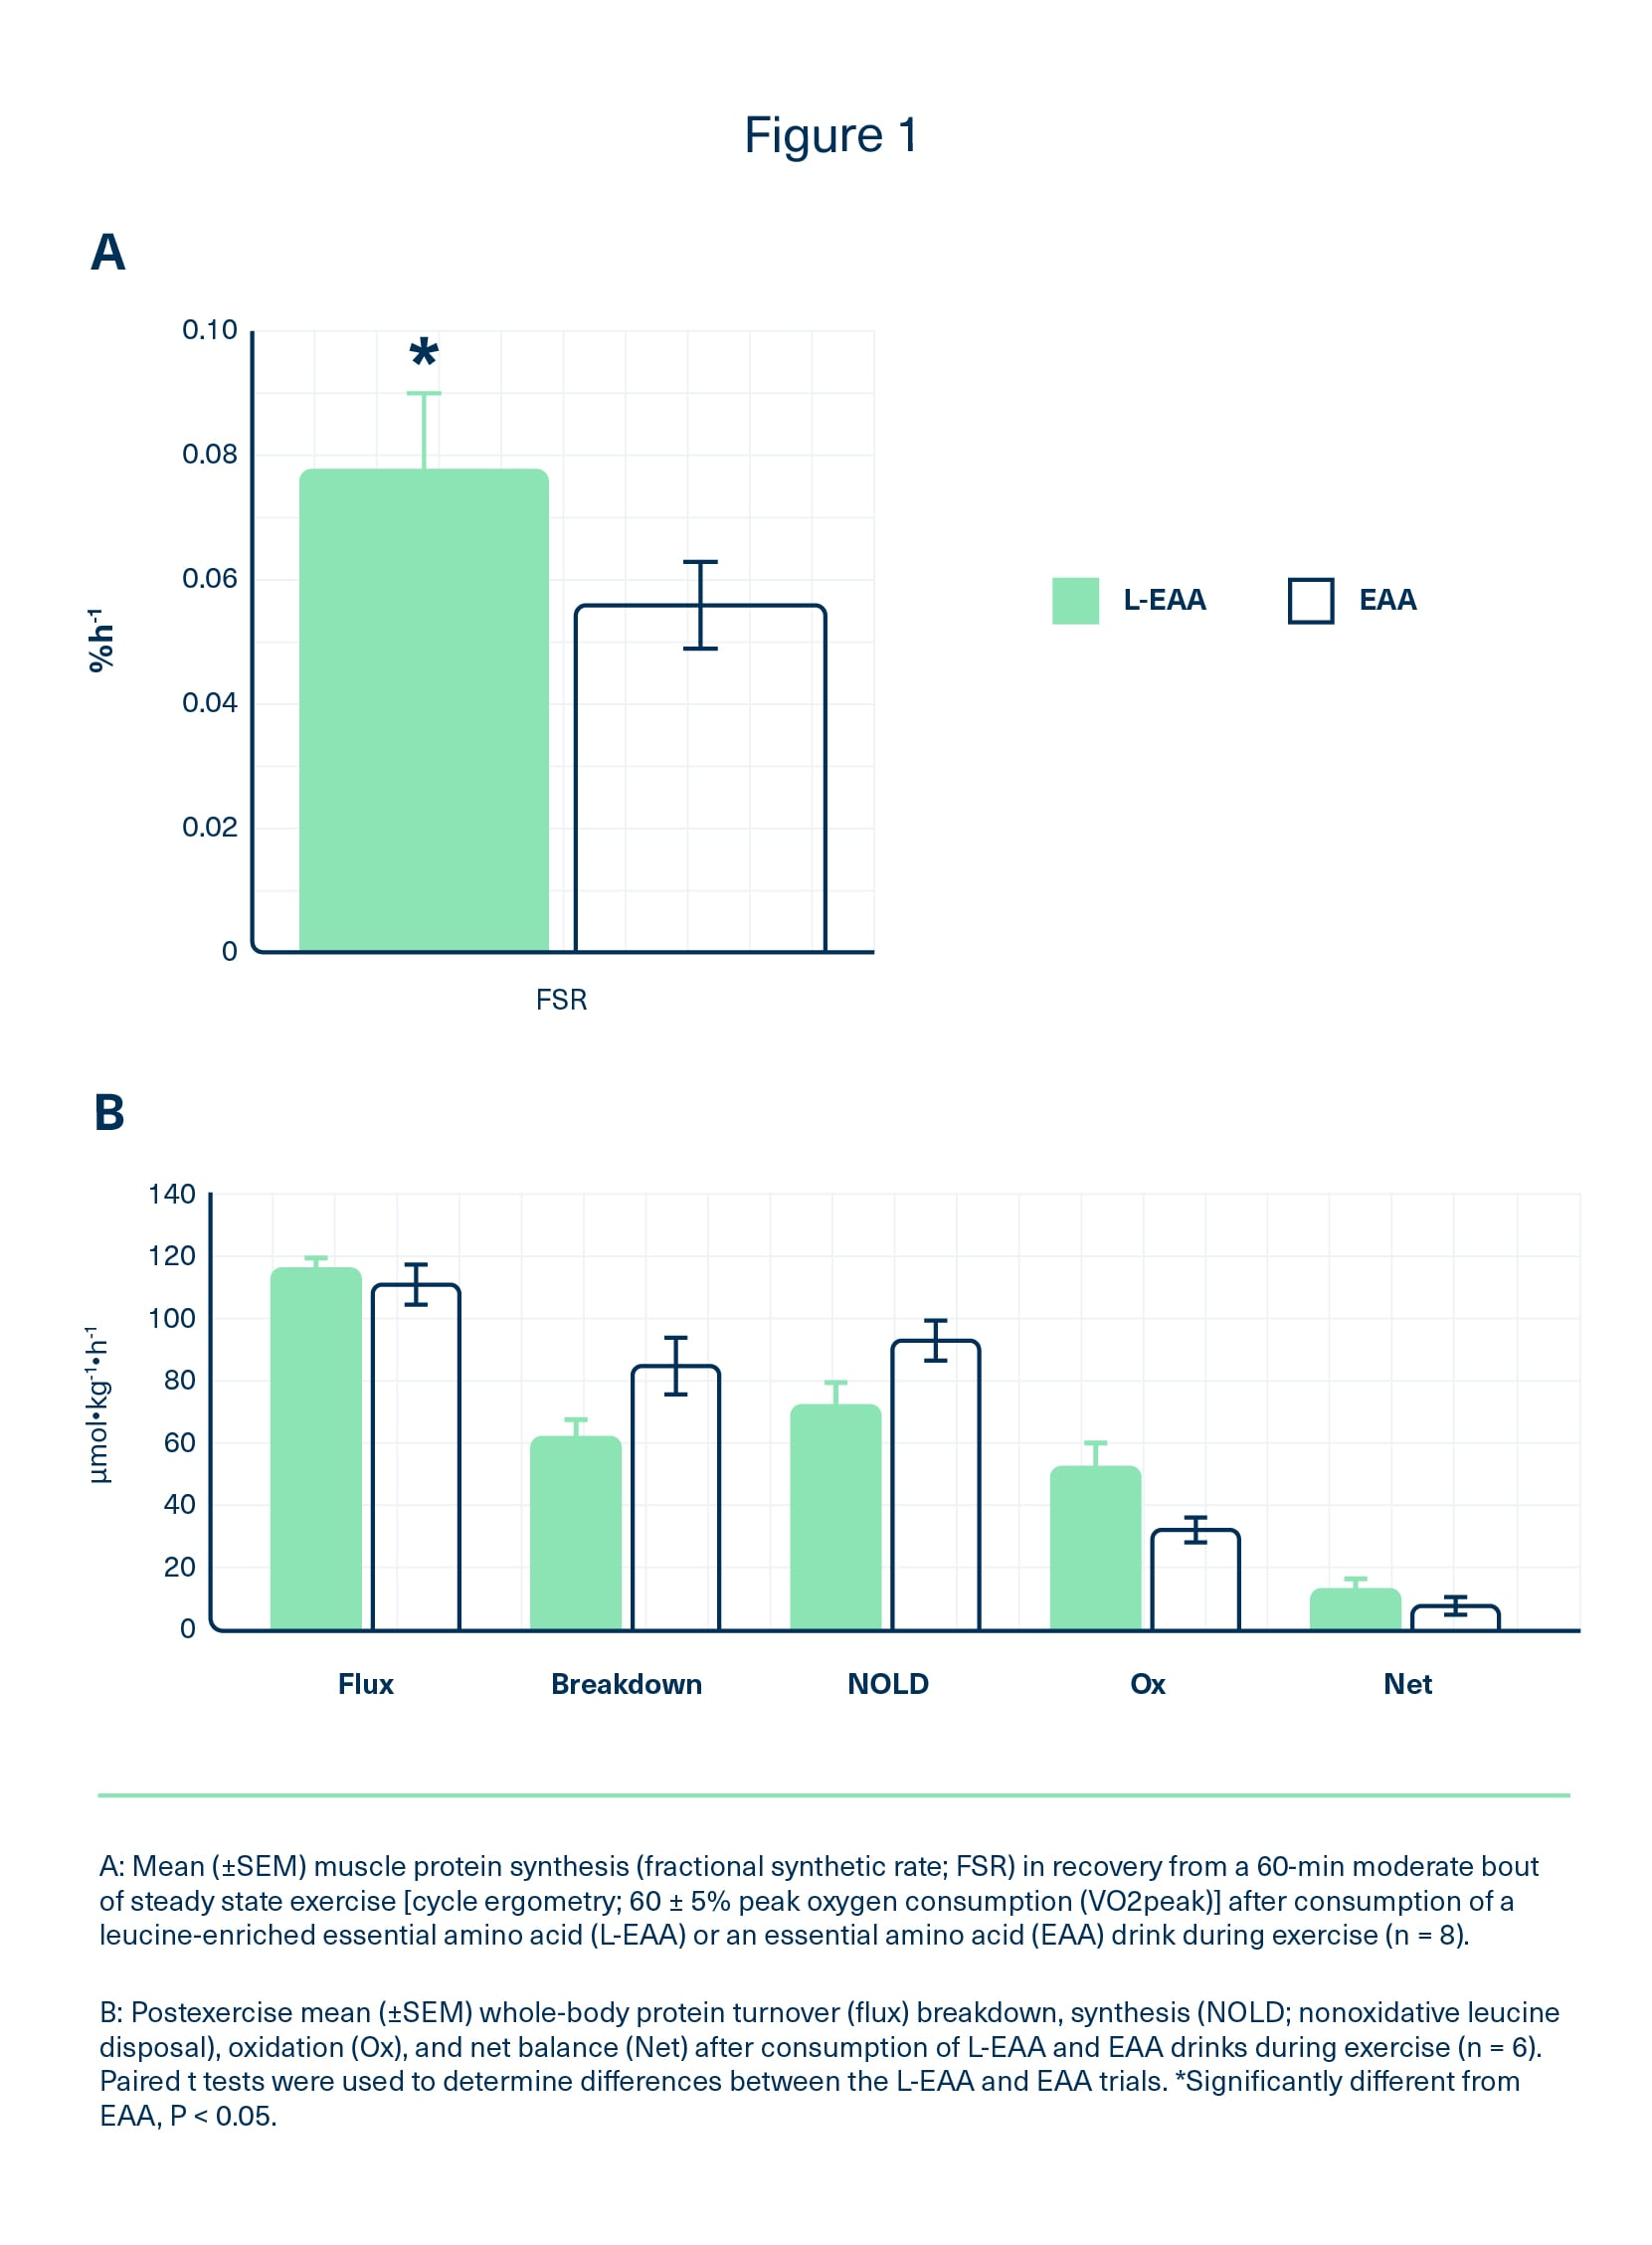 Leucine-enriched EAA supplement increased postexercise muscle protein synthesis 33% more